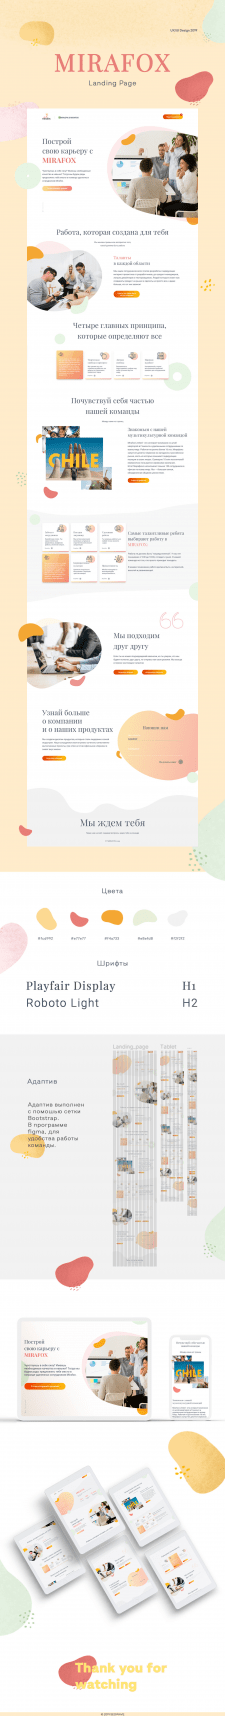 Landing Page for Mirafox